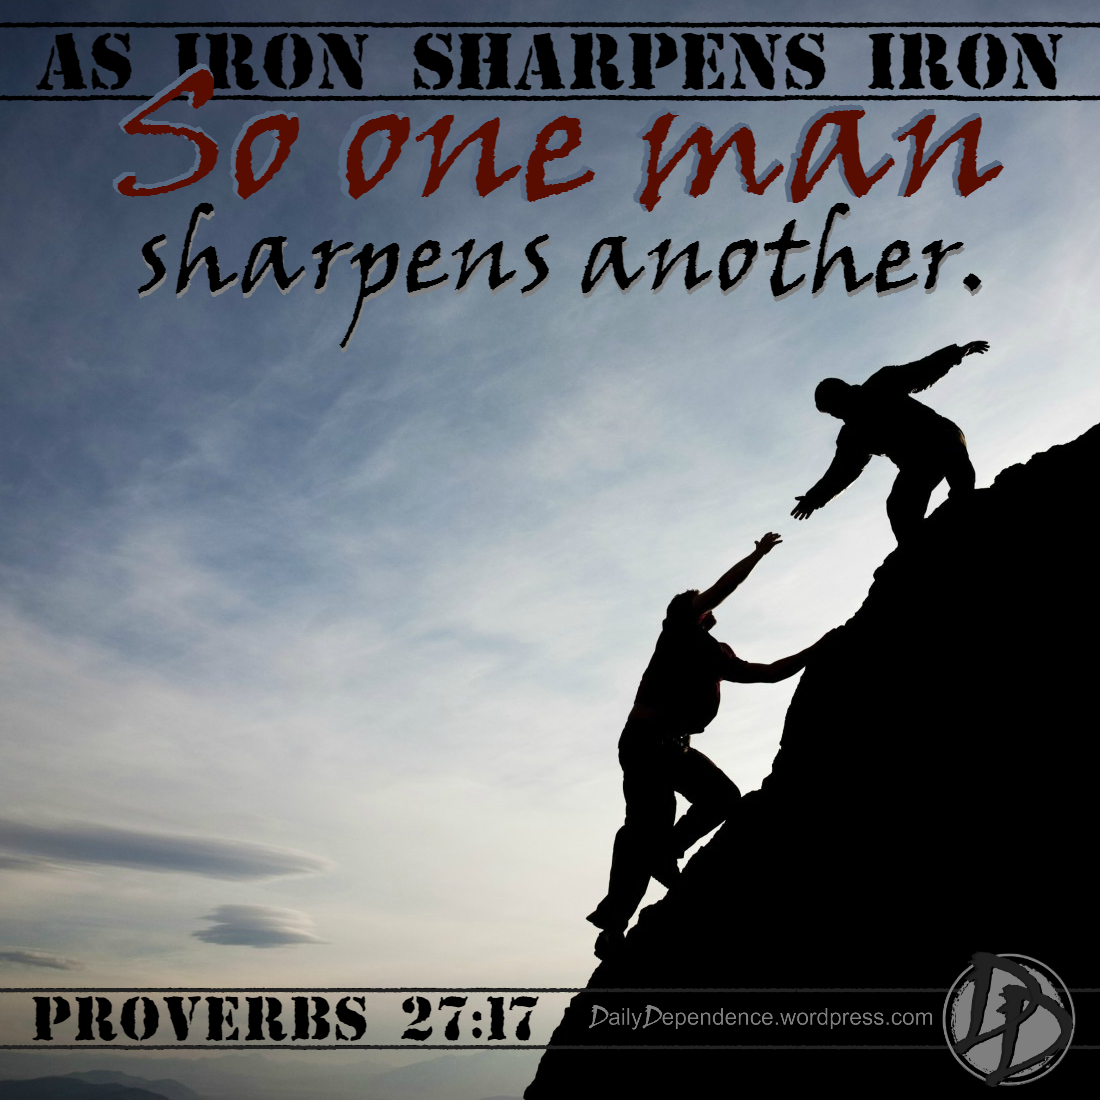 101-daily-dependence-proverbs-27-17-iron-sharpens-iron